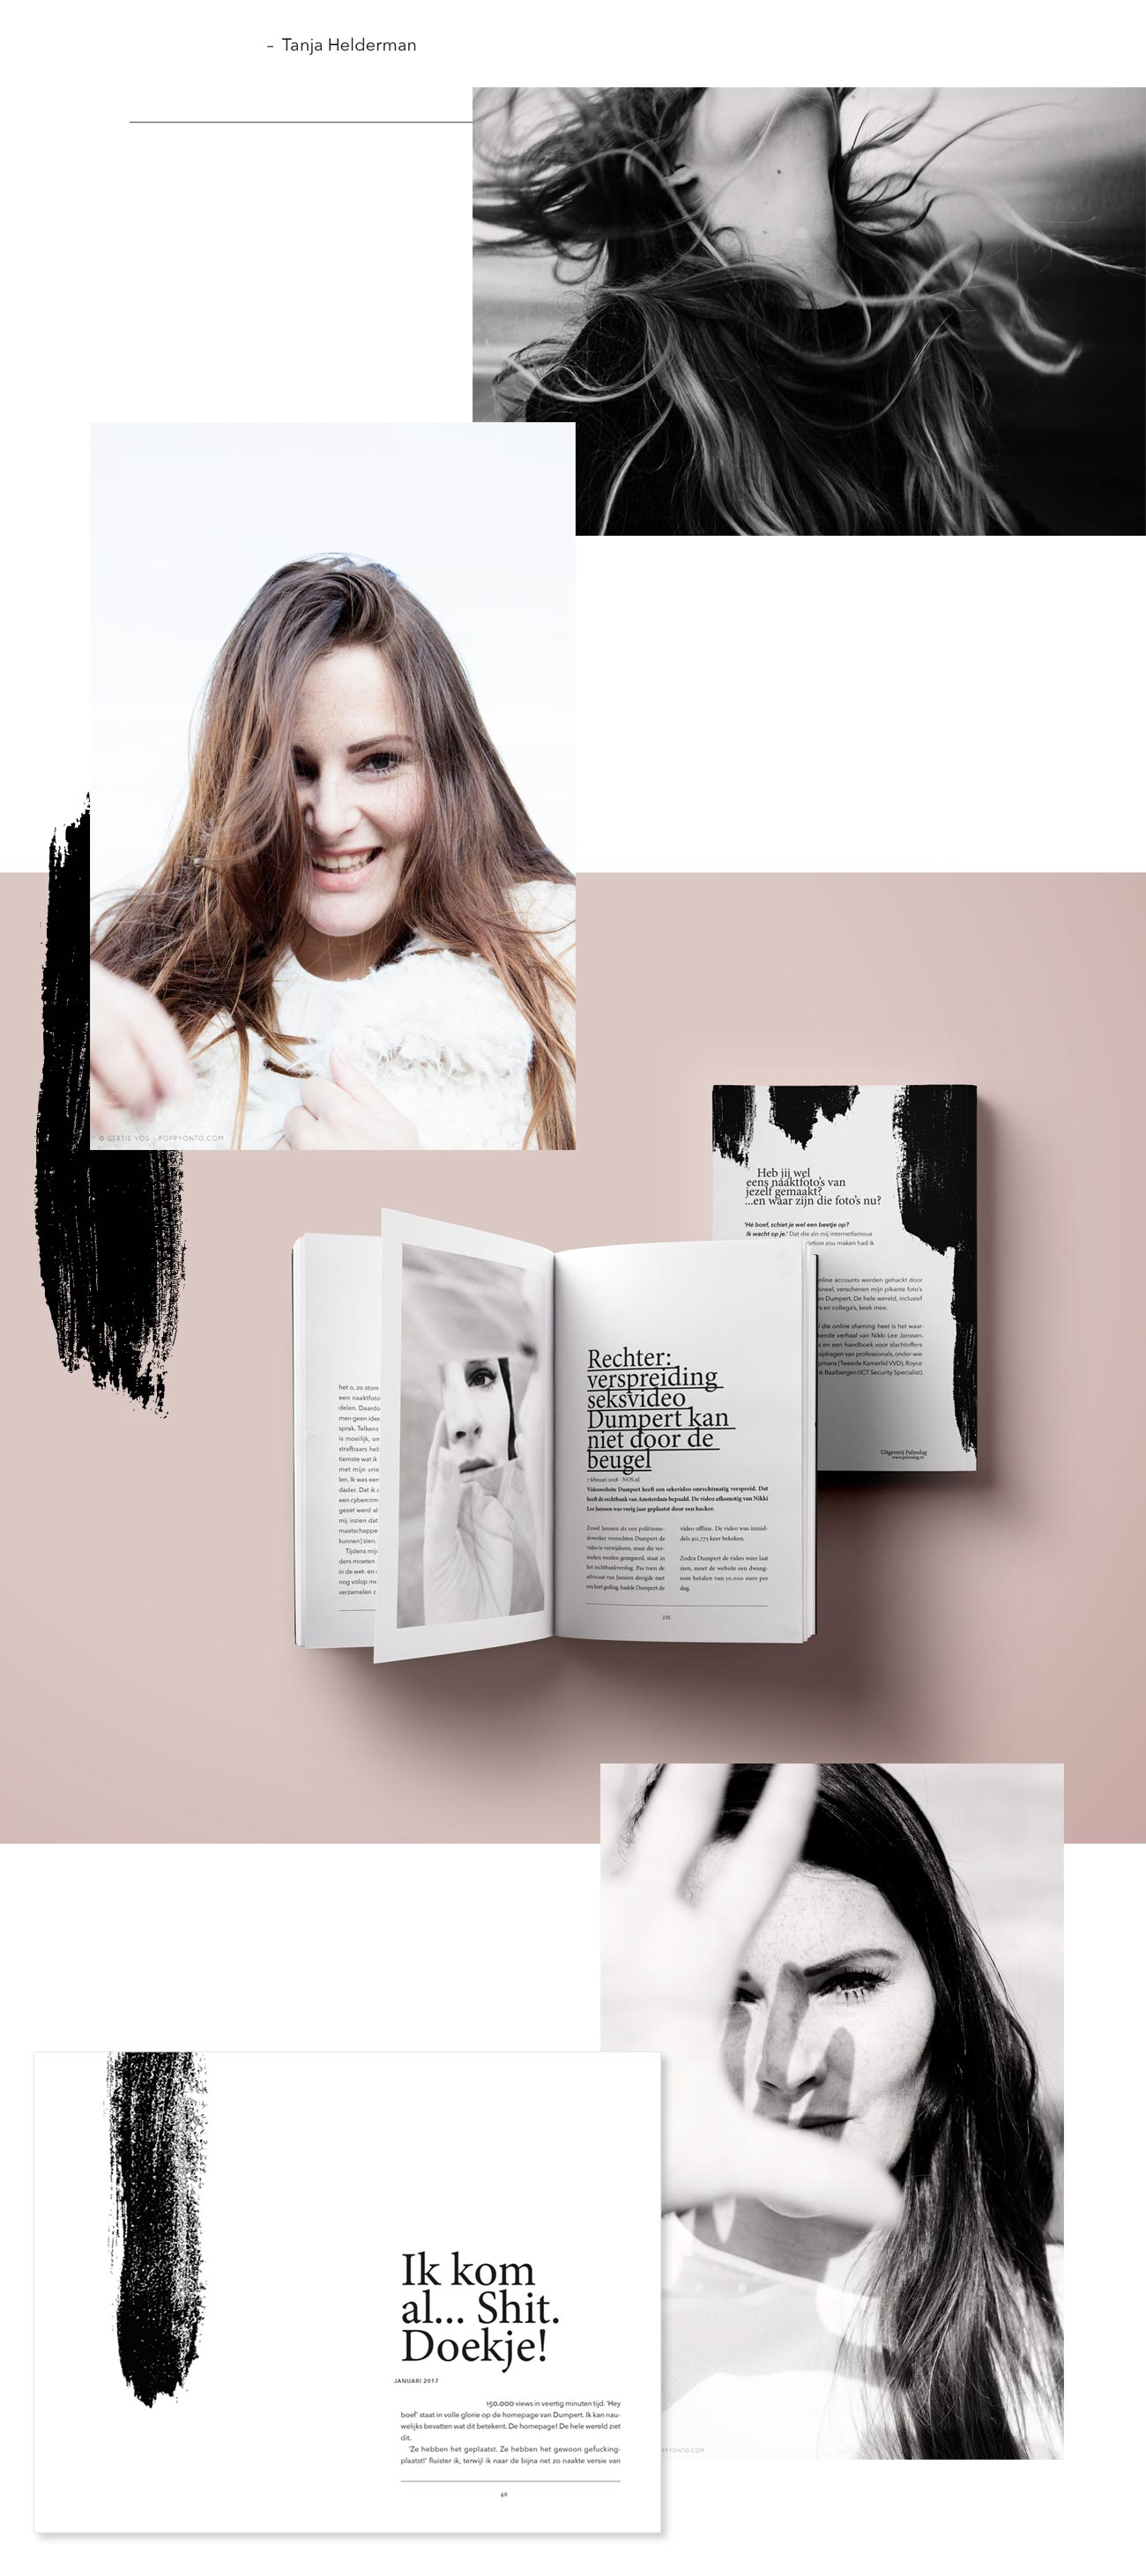 Ontwerp en vormgeving boek Niet Van Iedereen de hel die online shaming heet portret fotografie Nikki Lee Janssen Graphic Design Book Photography Portrait by Poppyonto